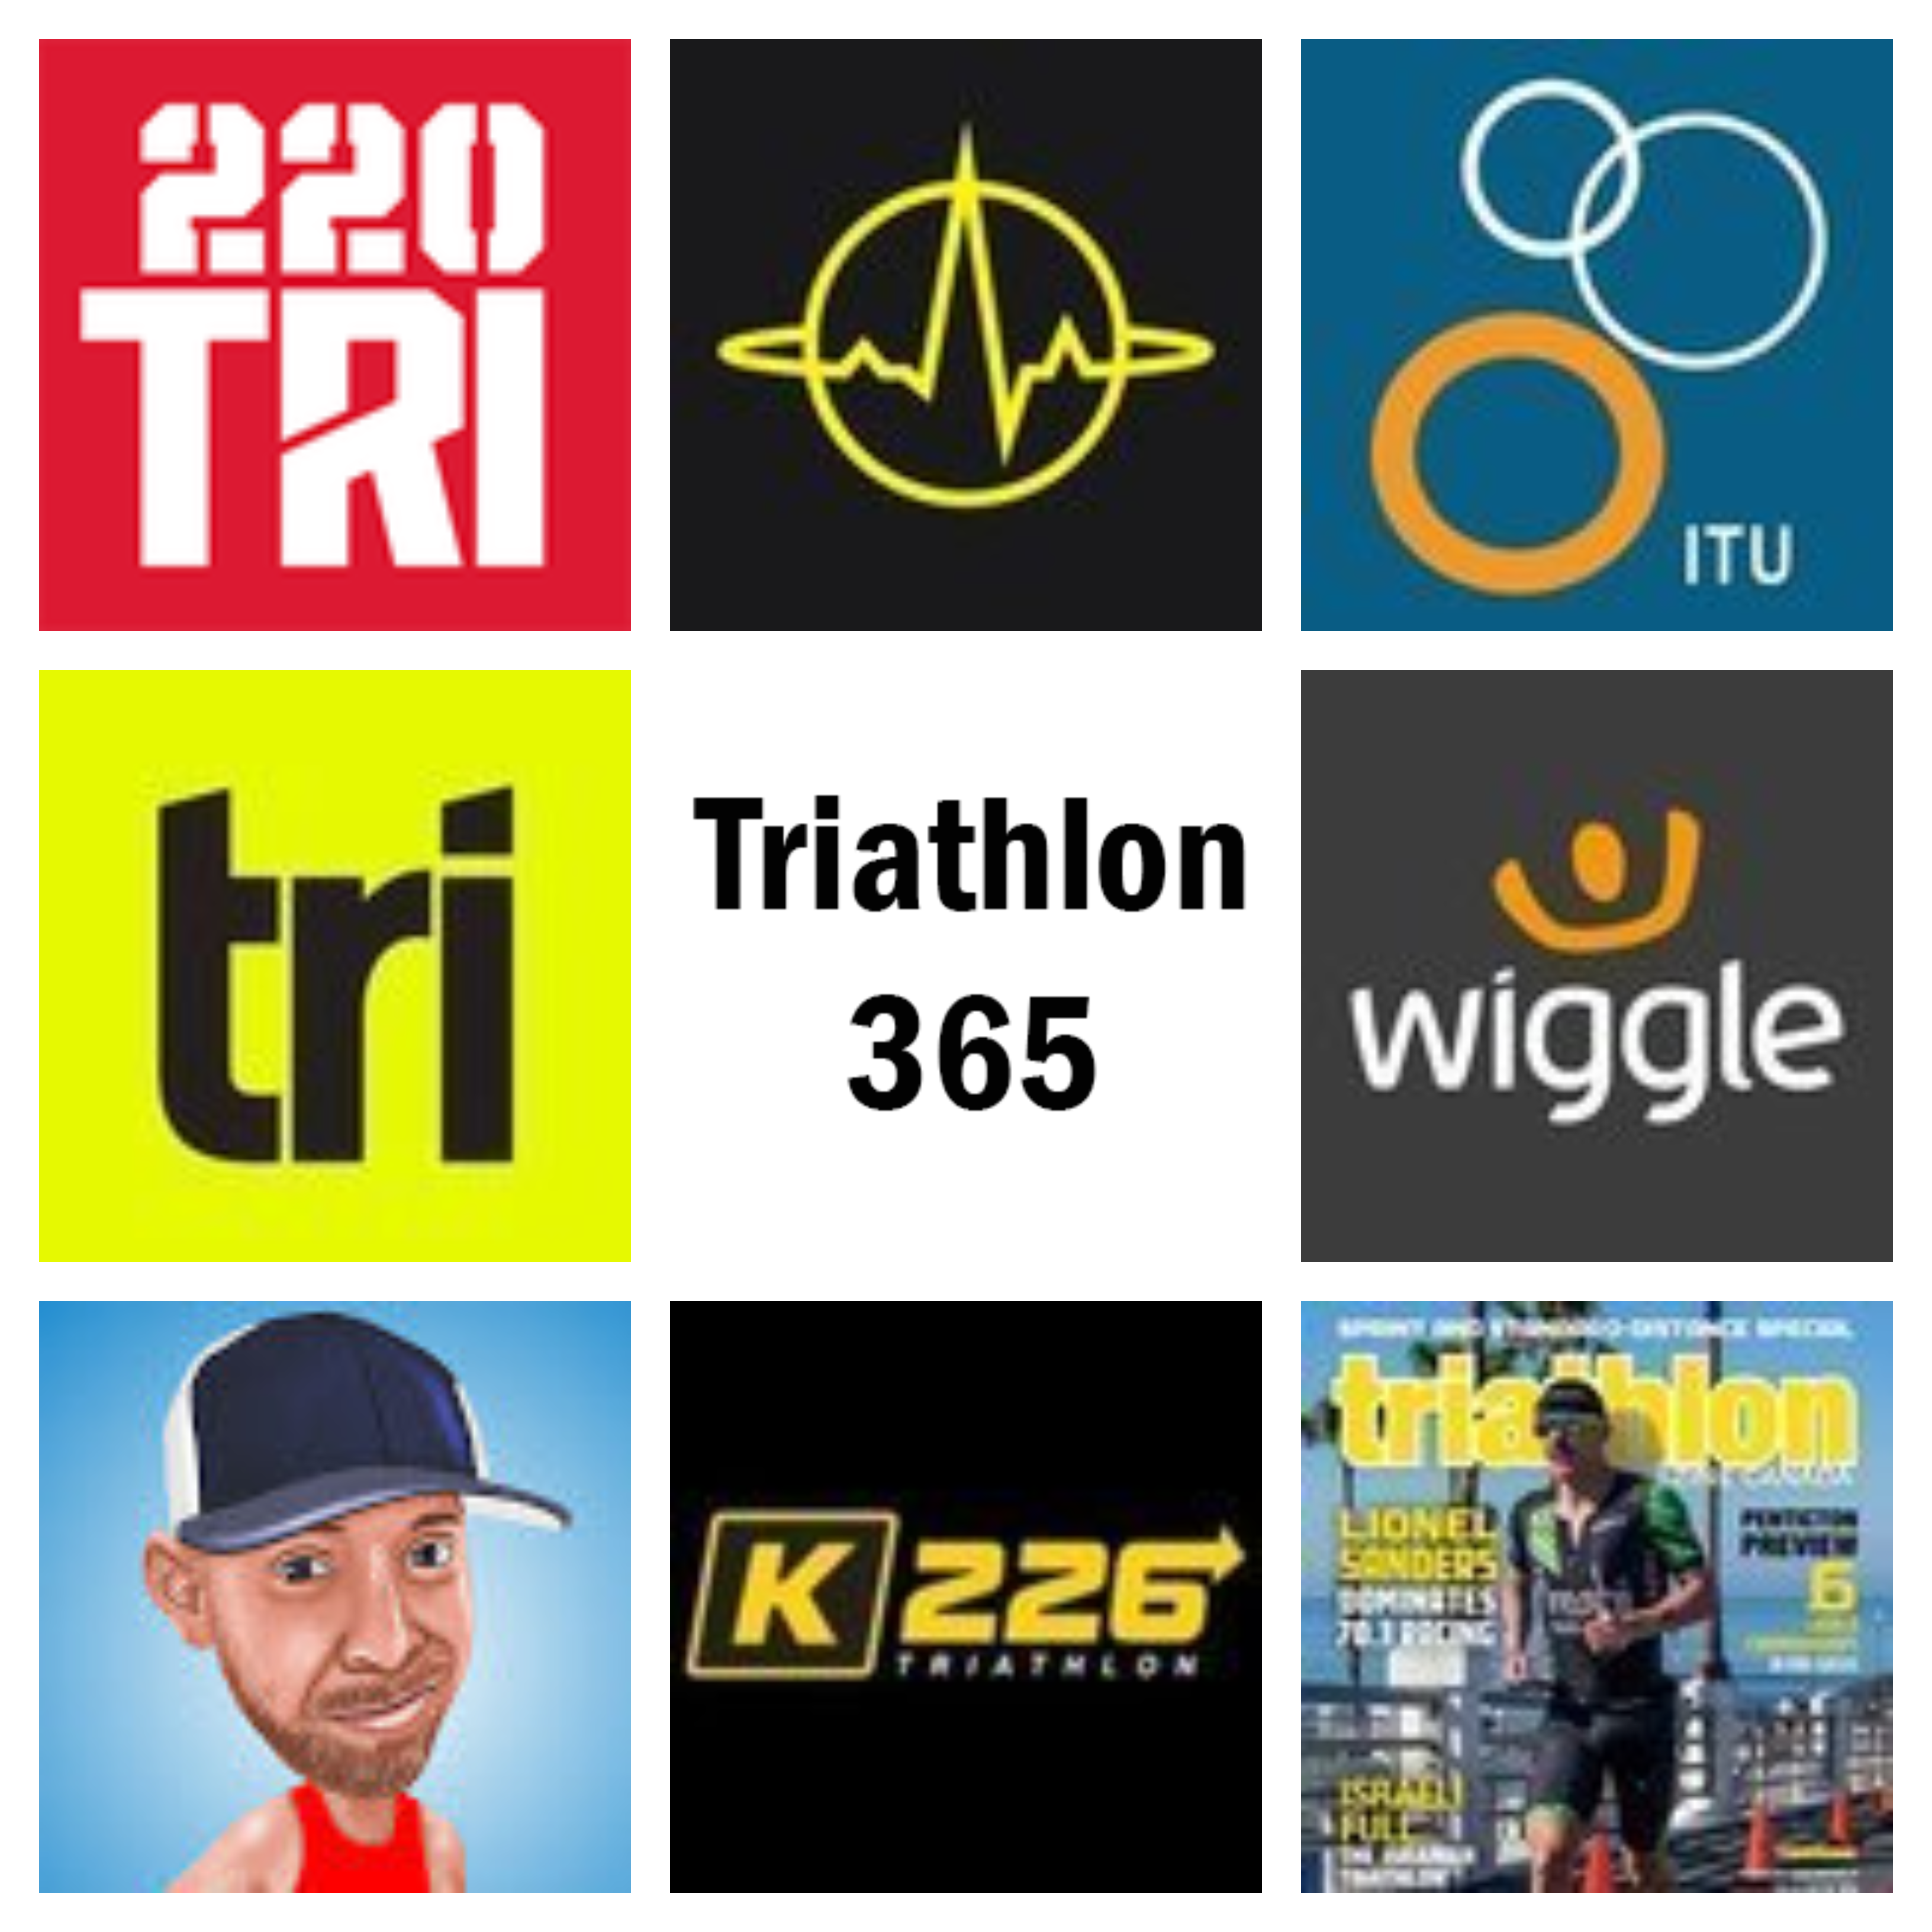 Triathlon websites Engels